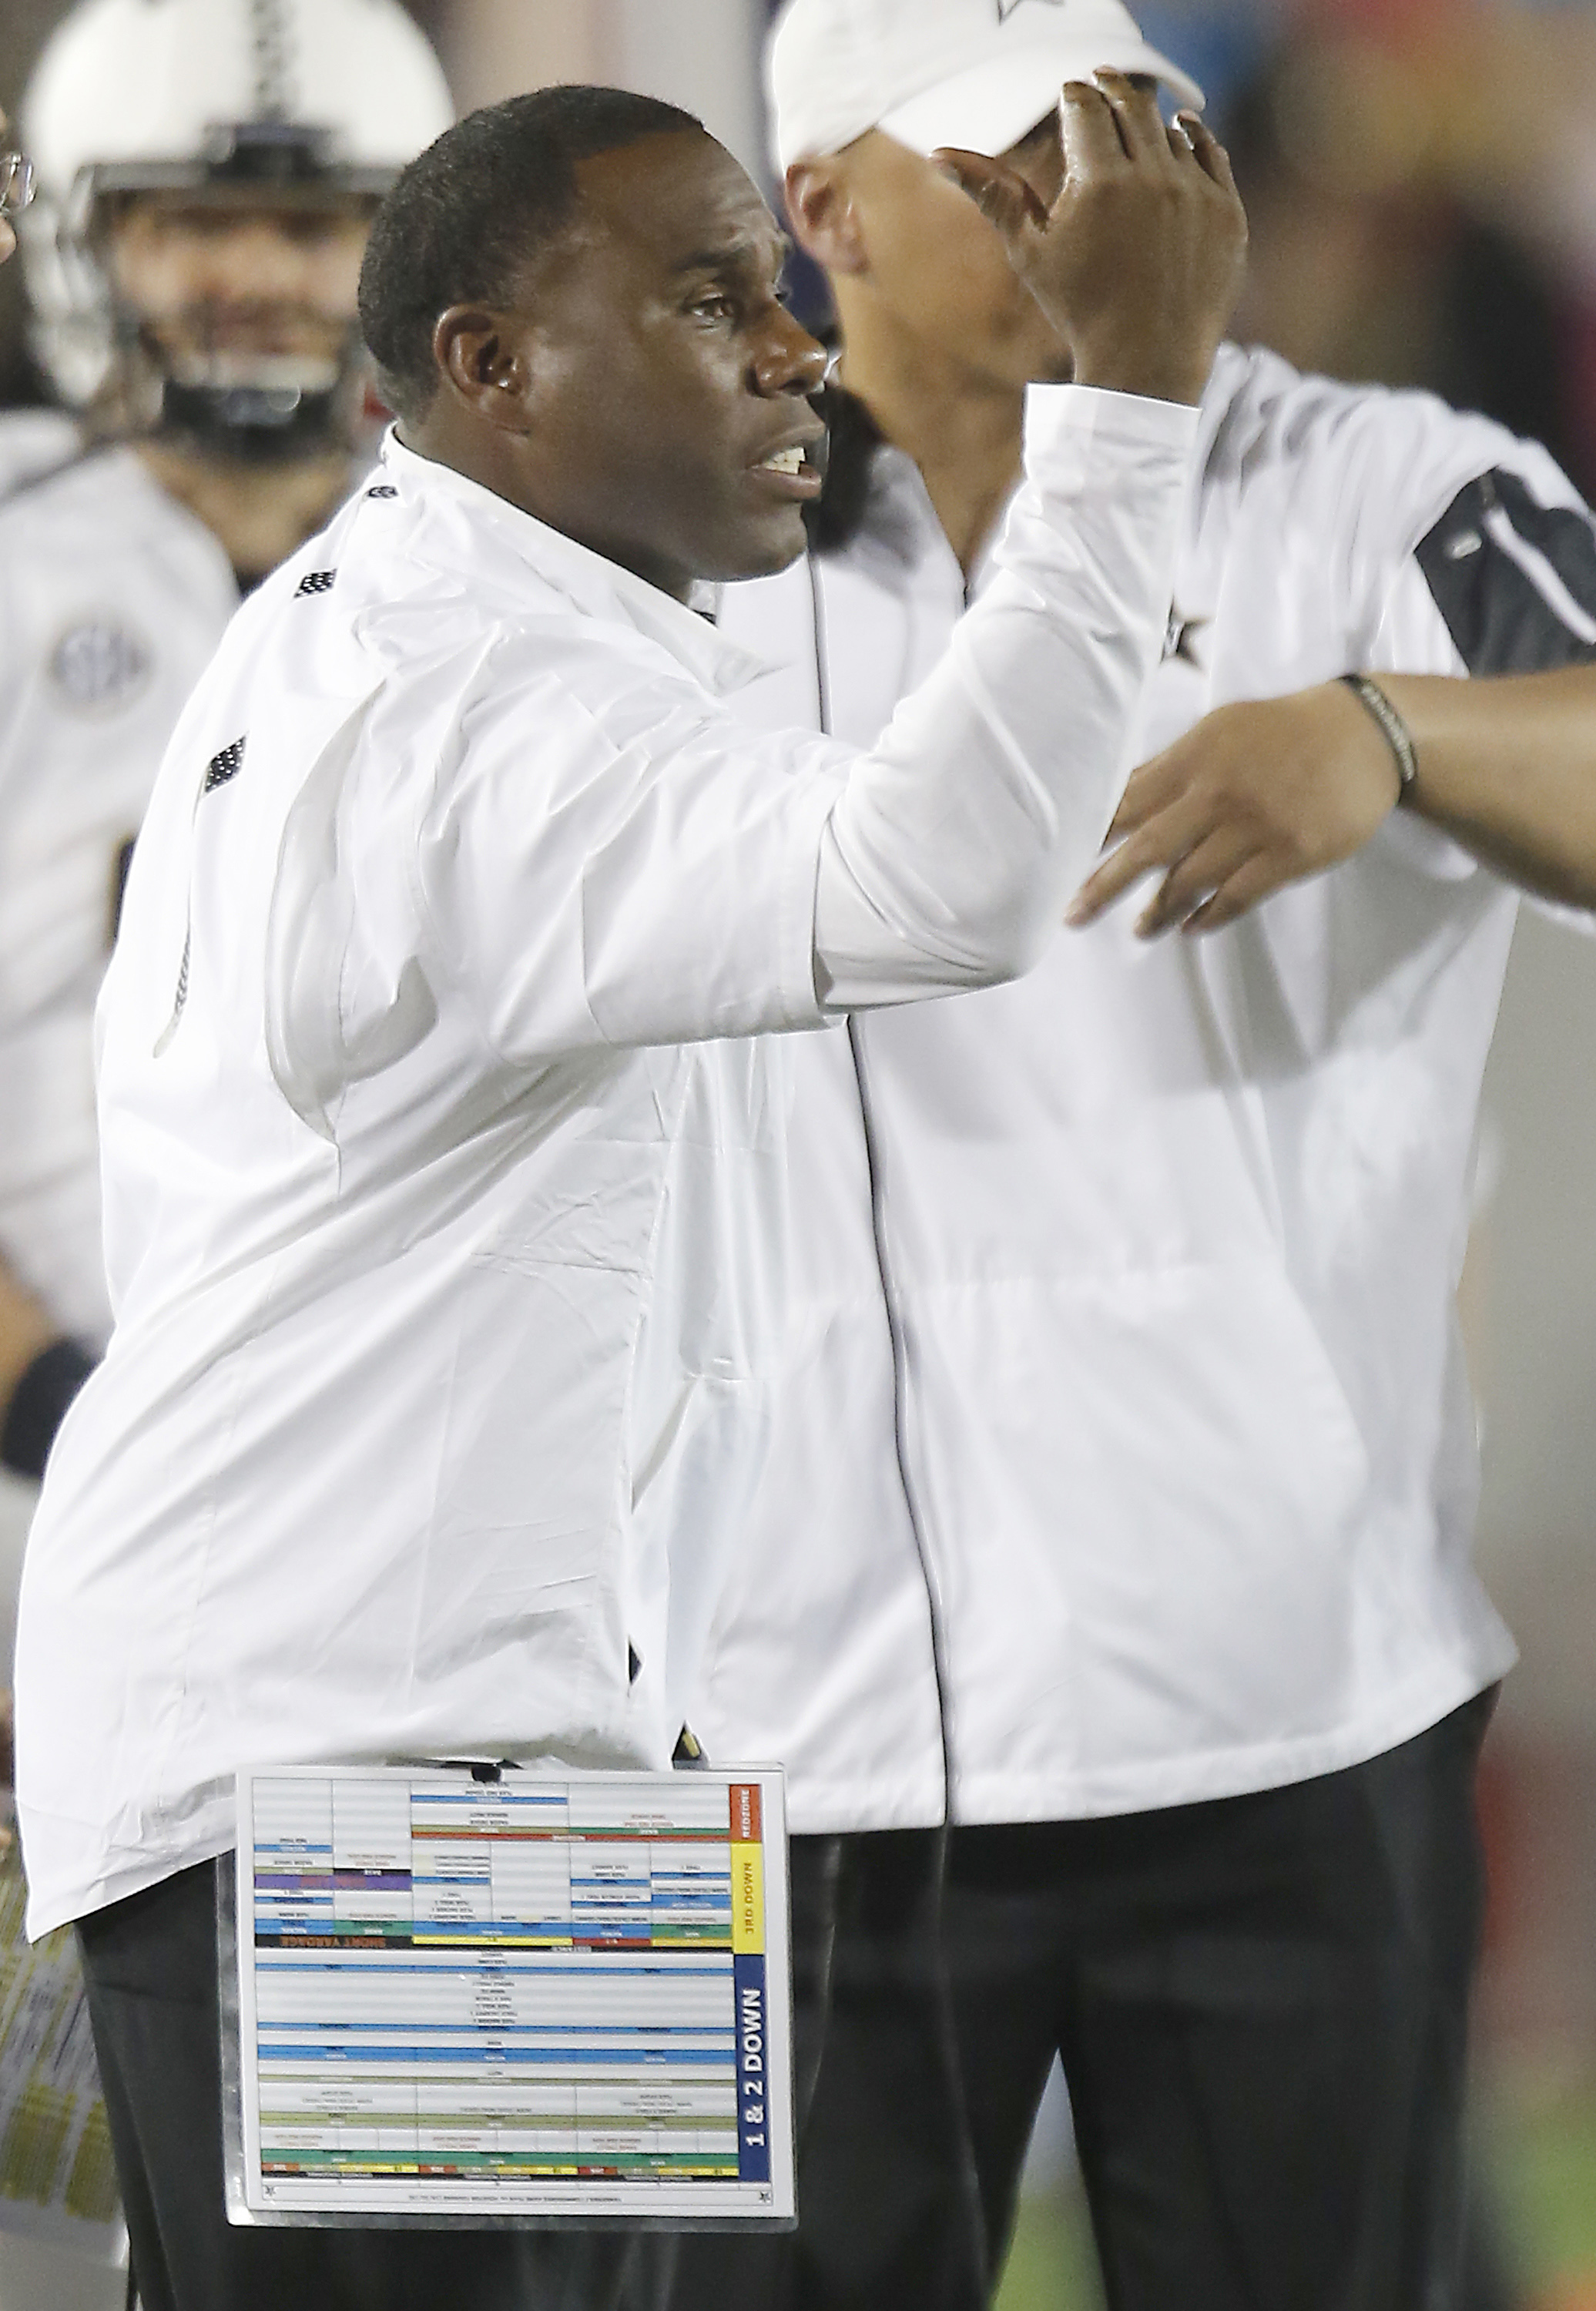 Derek Mason was disgusted too last week, but he is ready to beat Florida? Are you?